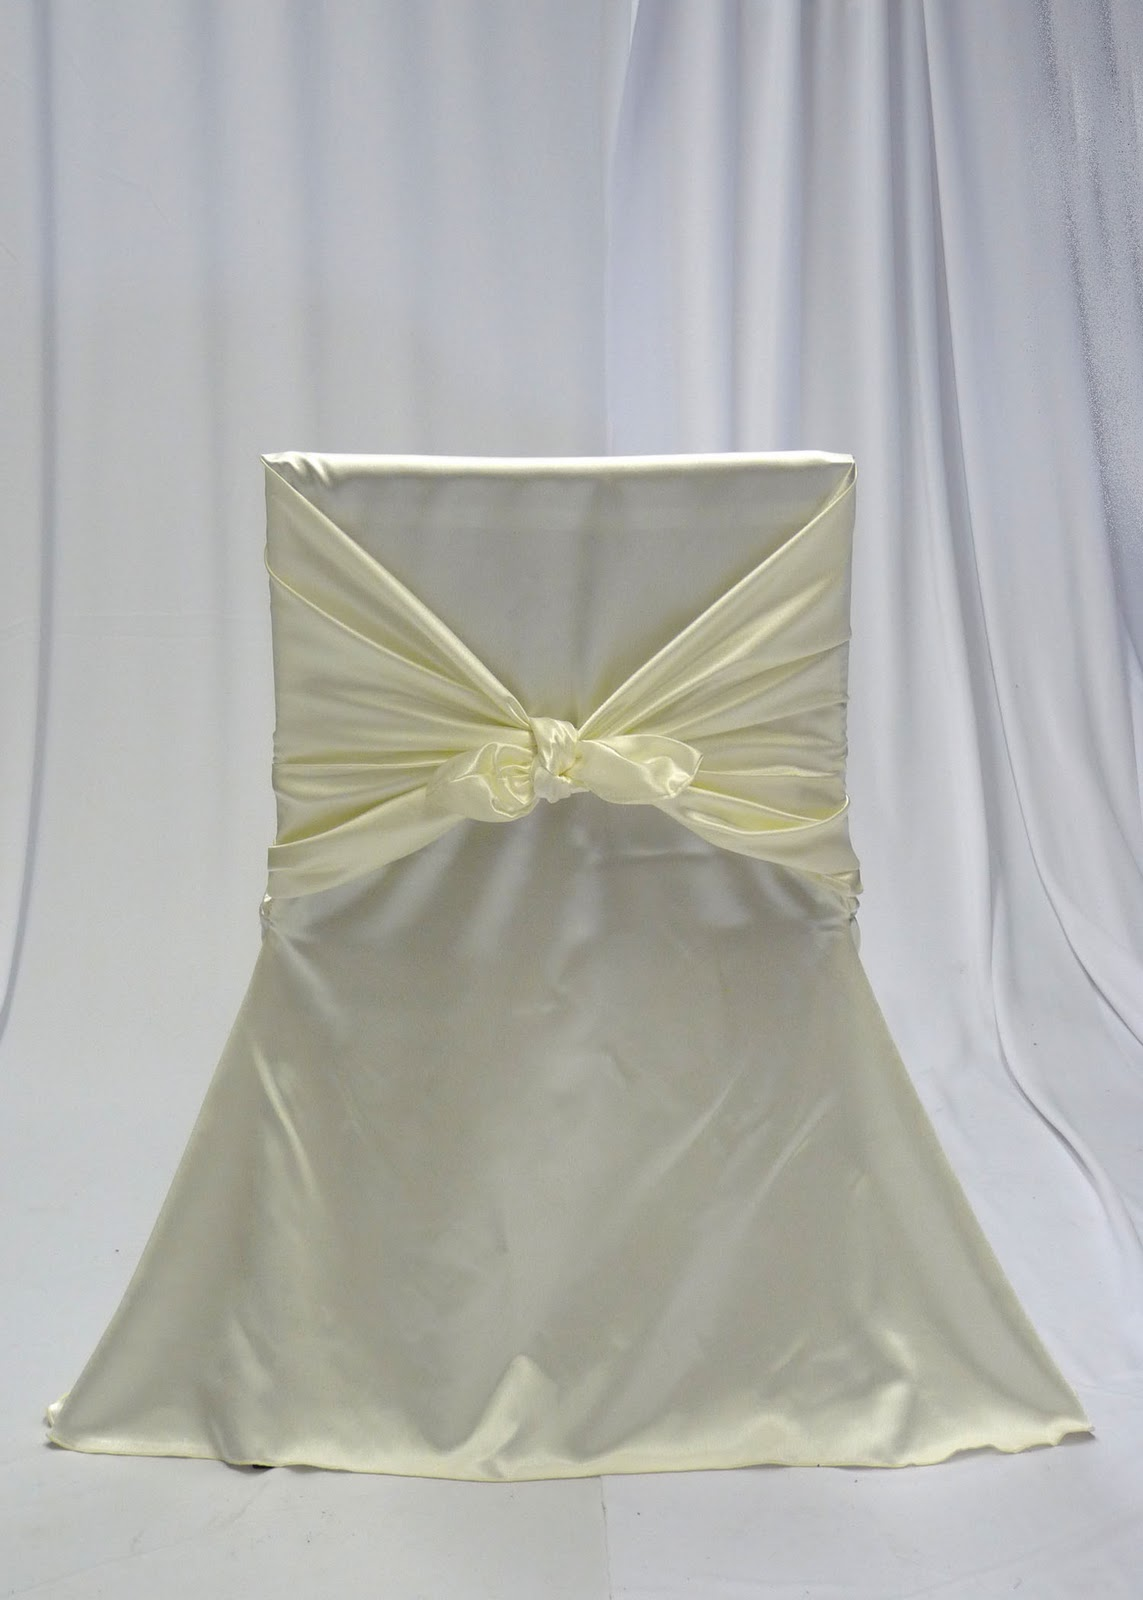 Chair Cover Rentals Gta Rocking Chairs On Porch Decor Rent Covers Toronto